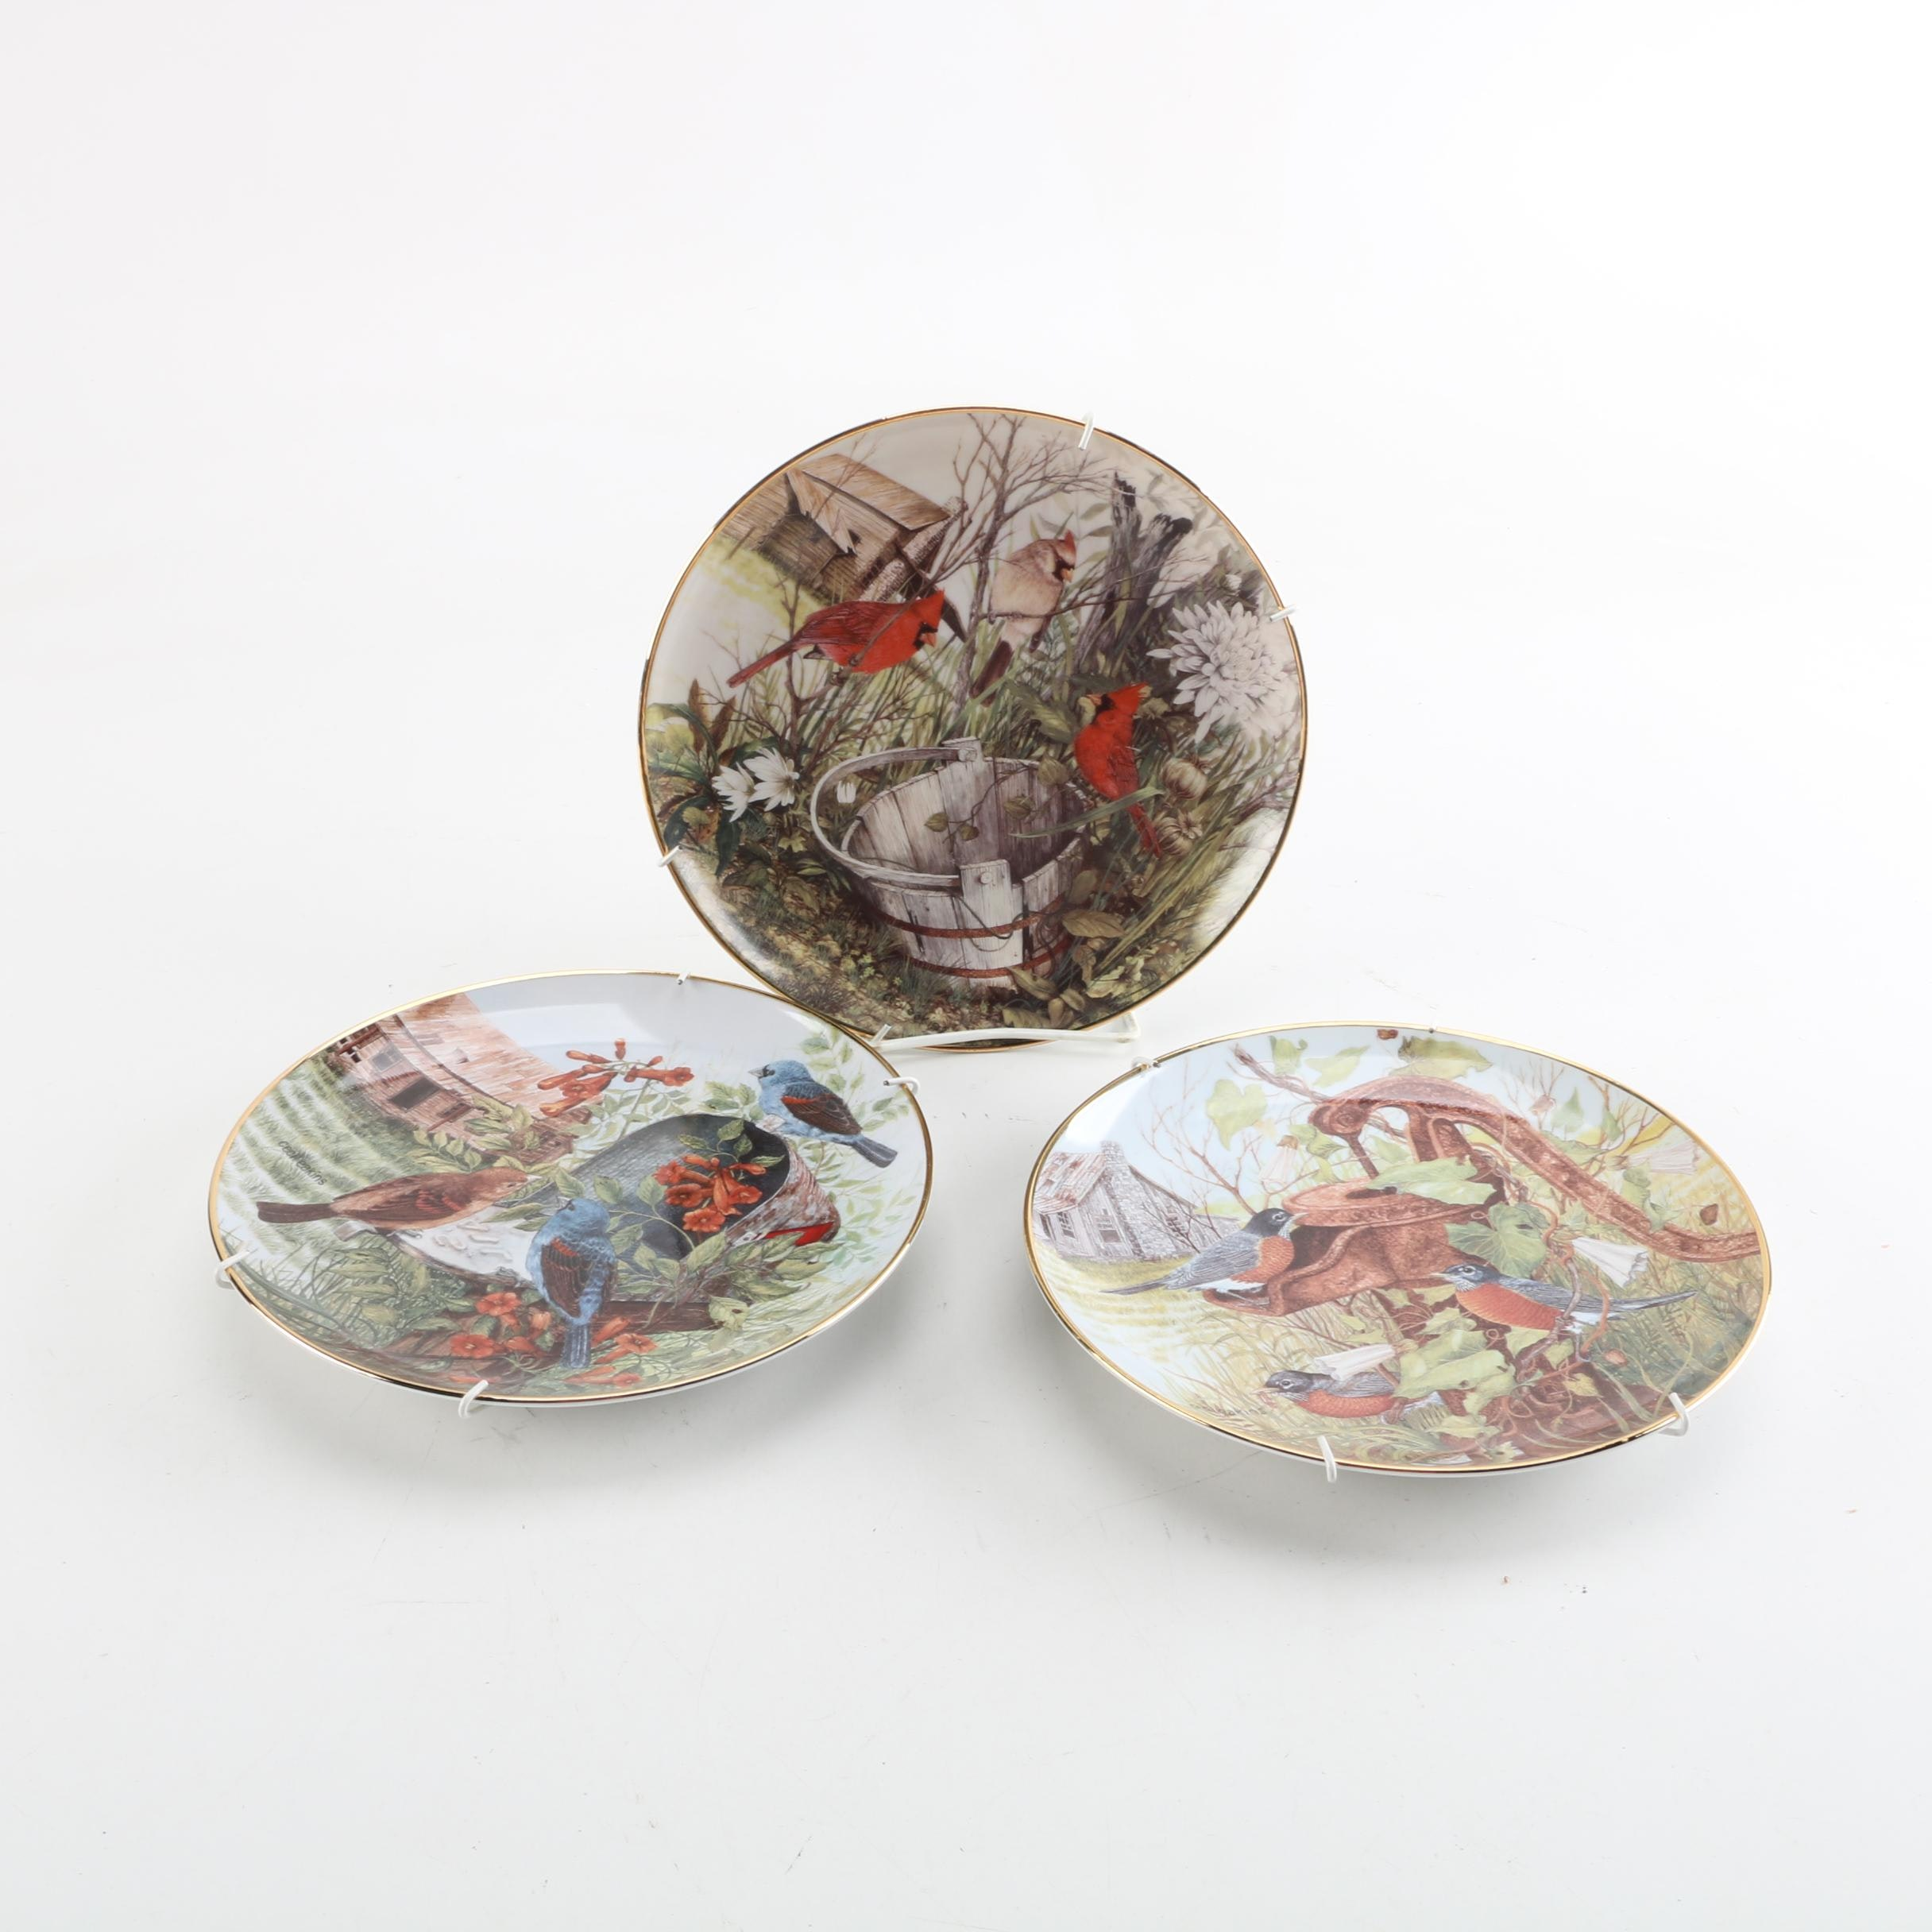 Franklin Mint Cecile Eakins Limited Edition Decorative Bird Plates